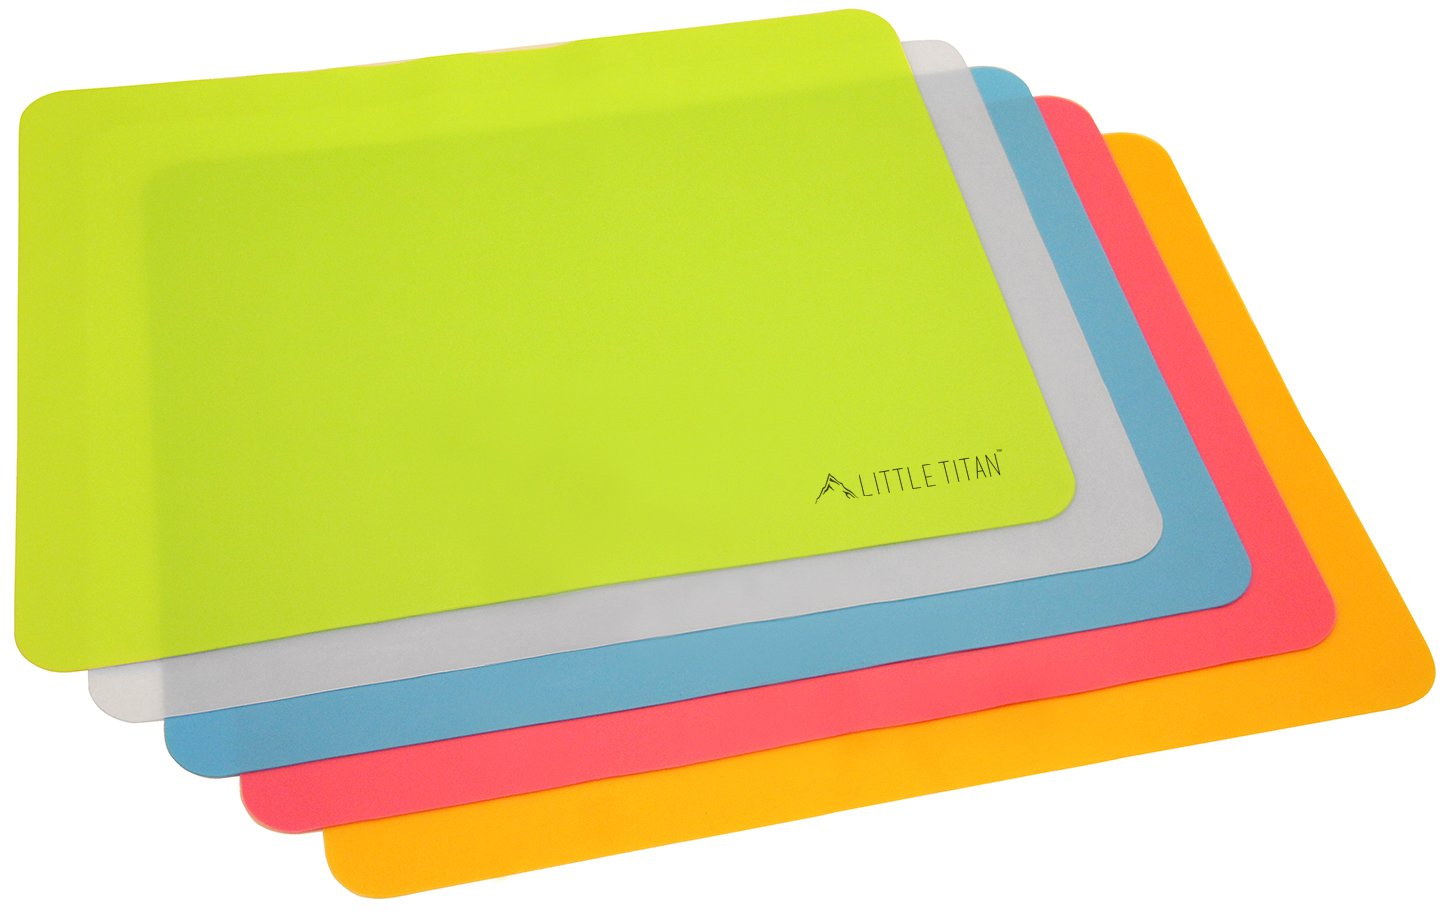 Thin and Portable Food Silicone Placemats for Kids and Babies, for Dining, Restaurants and more by Little Titan (5 Pack)